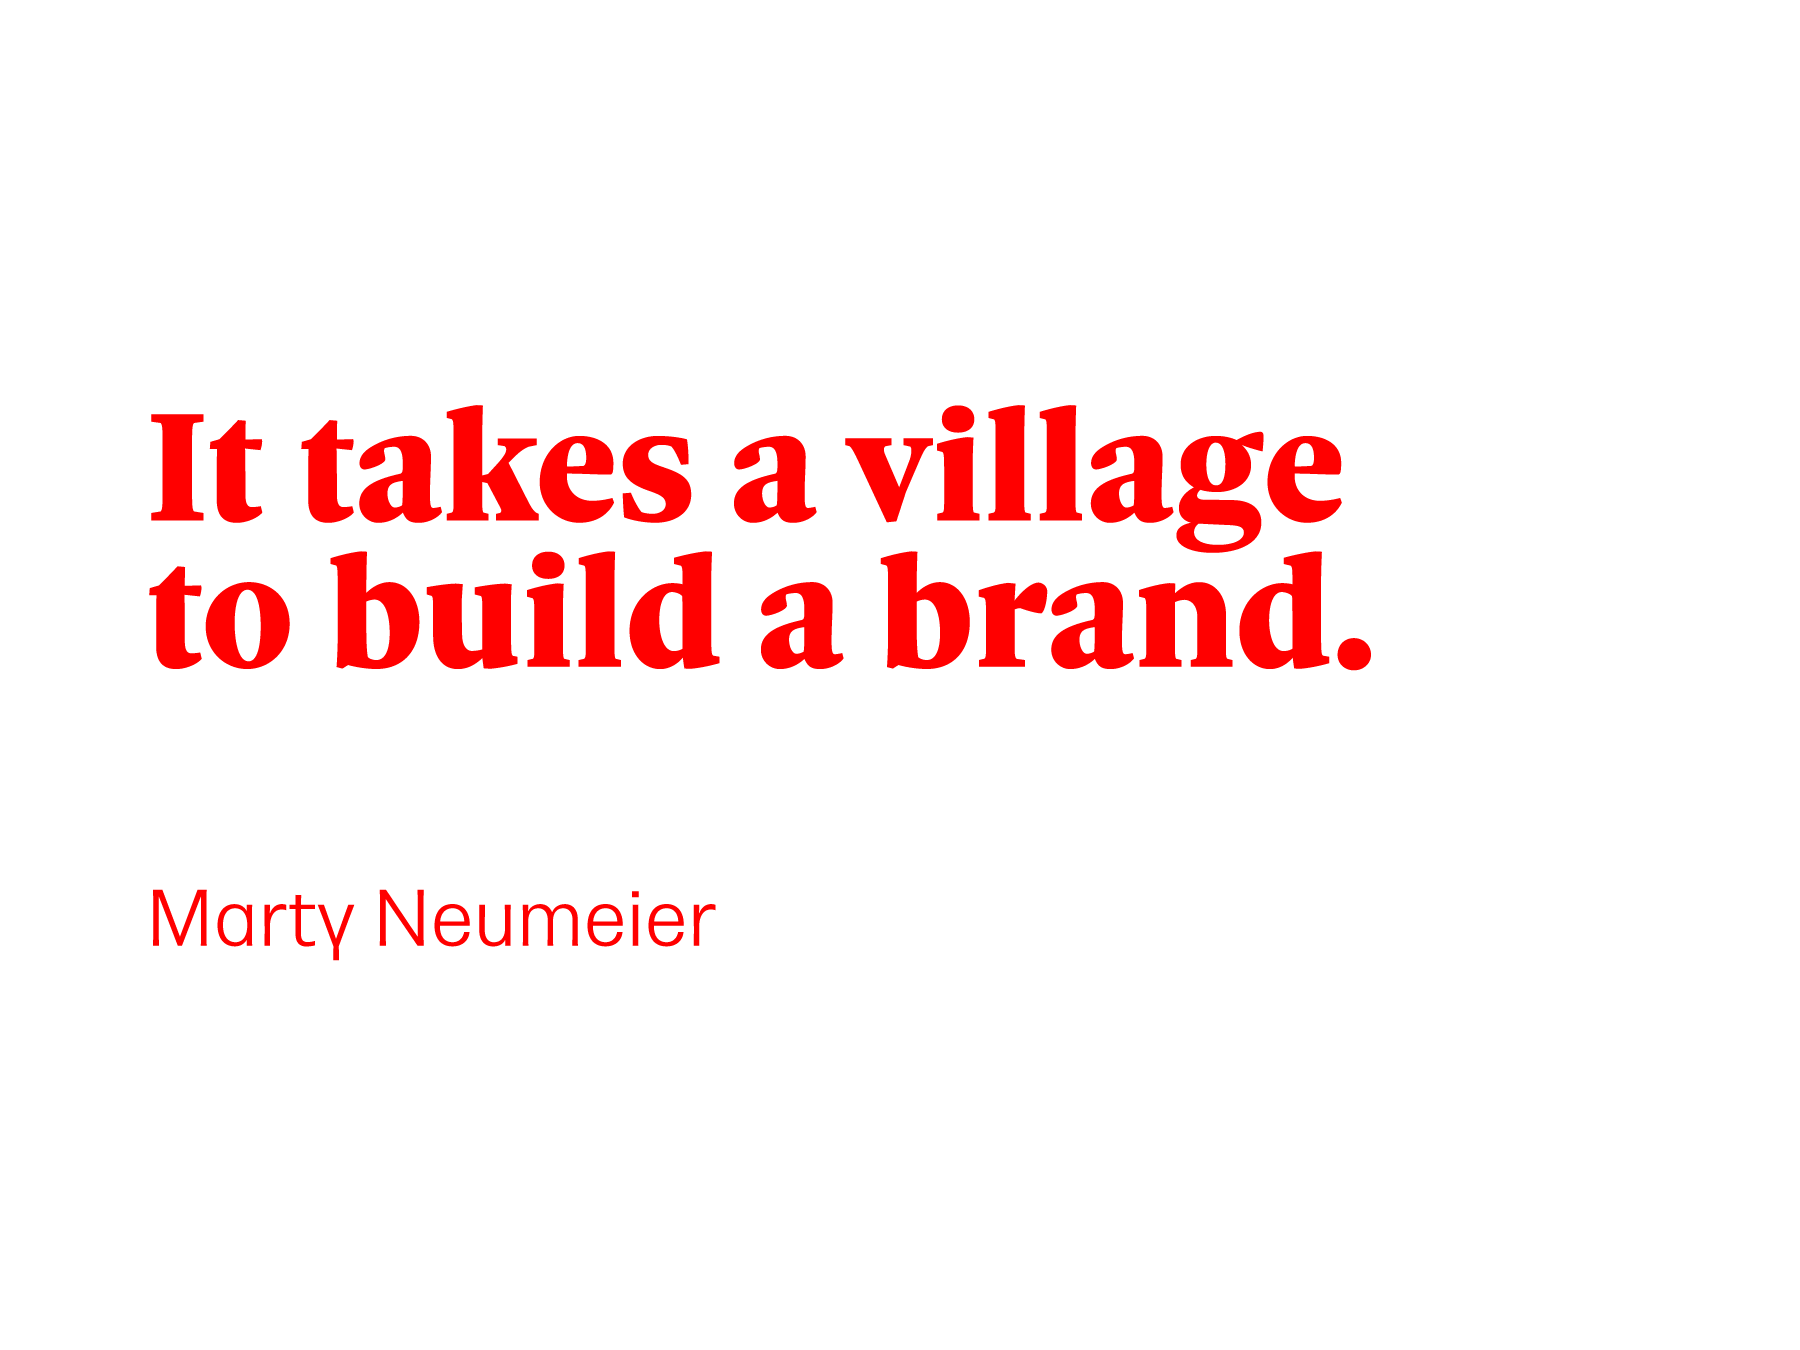 It takes a village to build a brand. Marty Neumeier